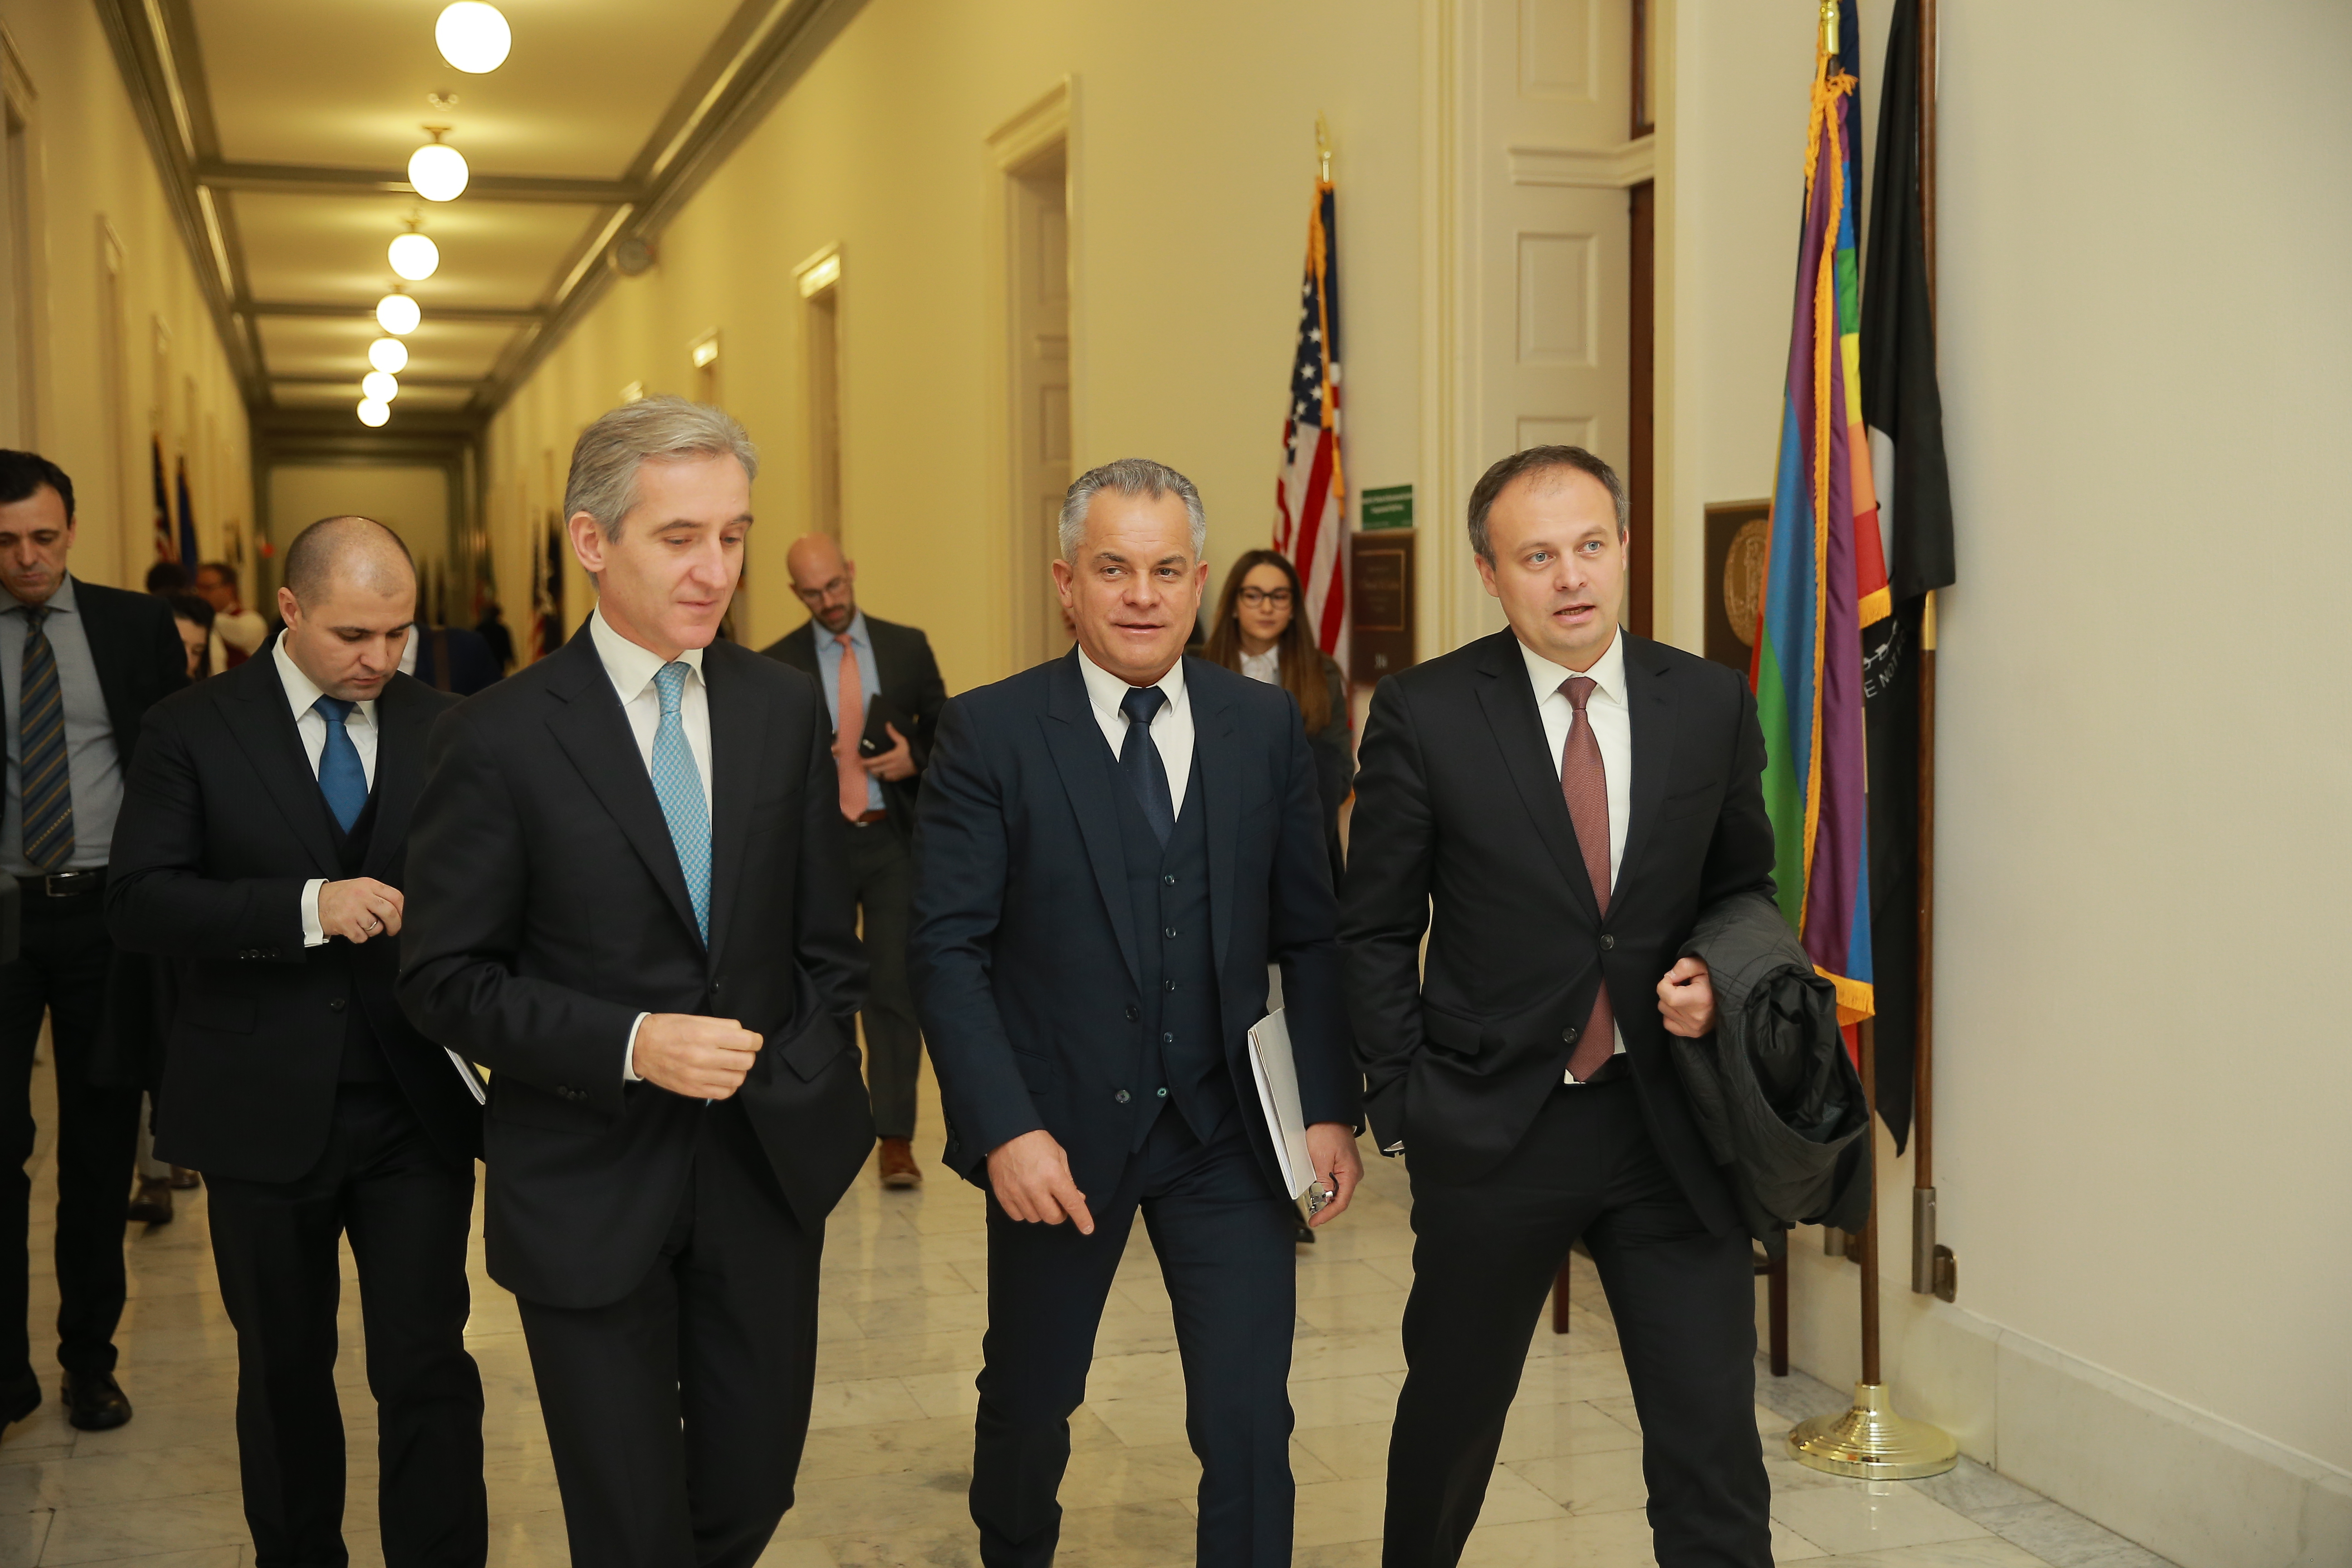 The President of the Democratic Party of Moldova Vlad Plahotniuc began his visit to the United States of America